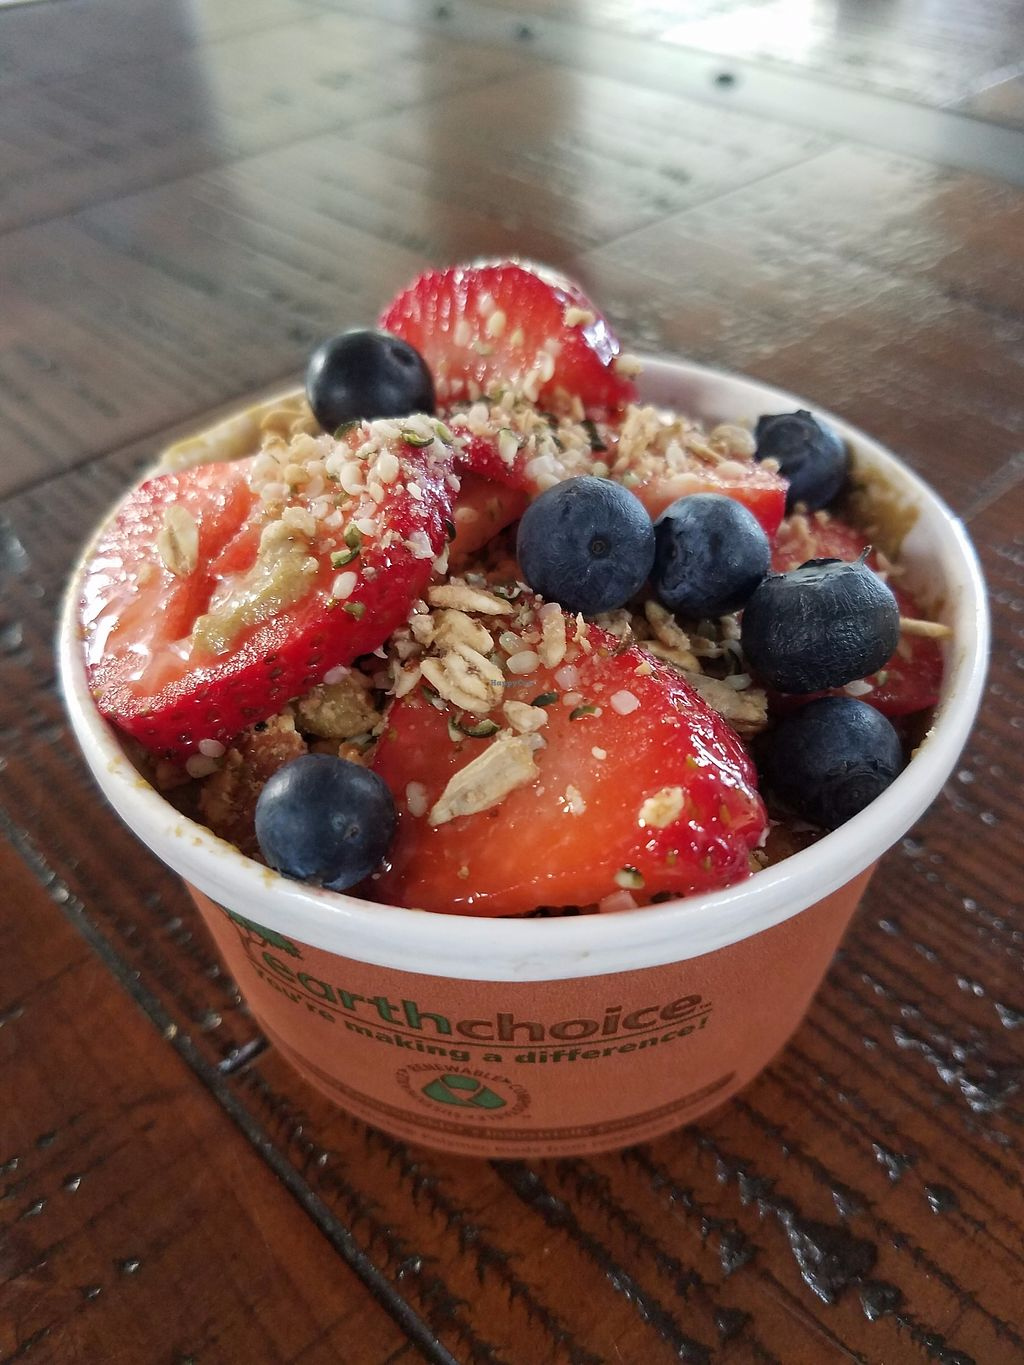 """Photo of Taspen's Cosmic Kitchen  by <a href=""""/members/profile/CosmicKitchen"""">CosmicKitchen</a> <br/>Acai Bowls!! NOM NOM!! Dairy free ice cream packed with fresh fruit and all the fixings! <br/> August 10, 2017  - <a href='/contact/abuse/image/87257/291338'>Report</a>"""